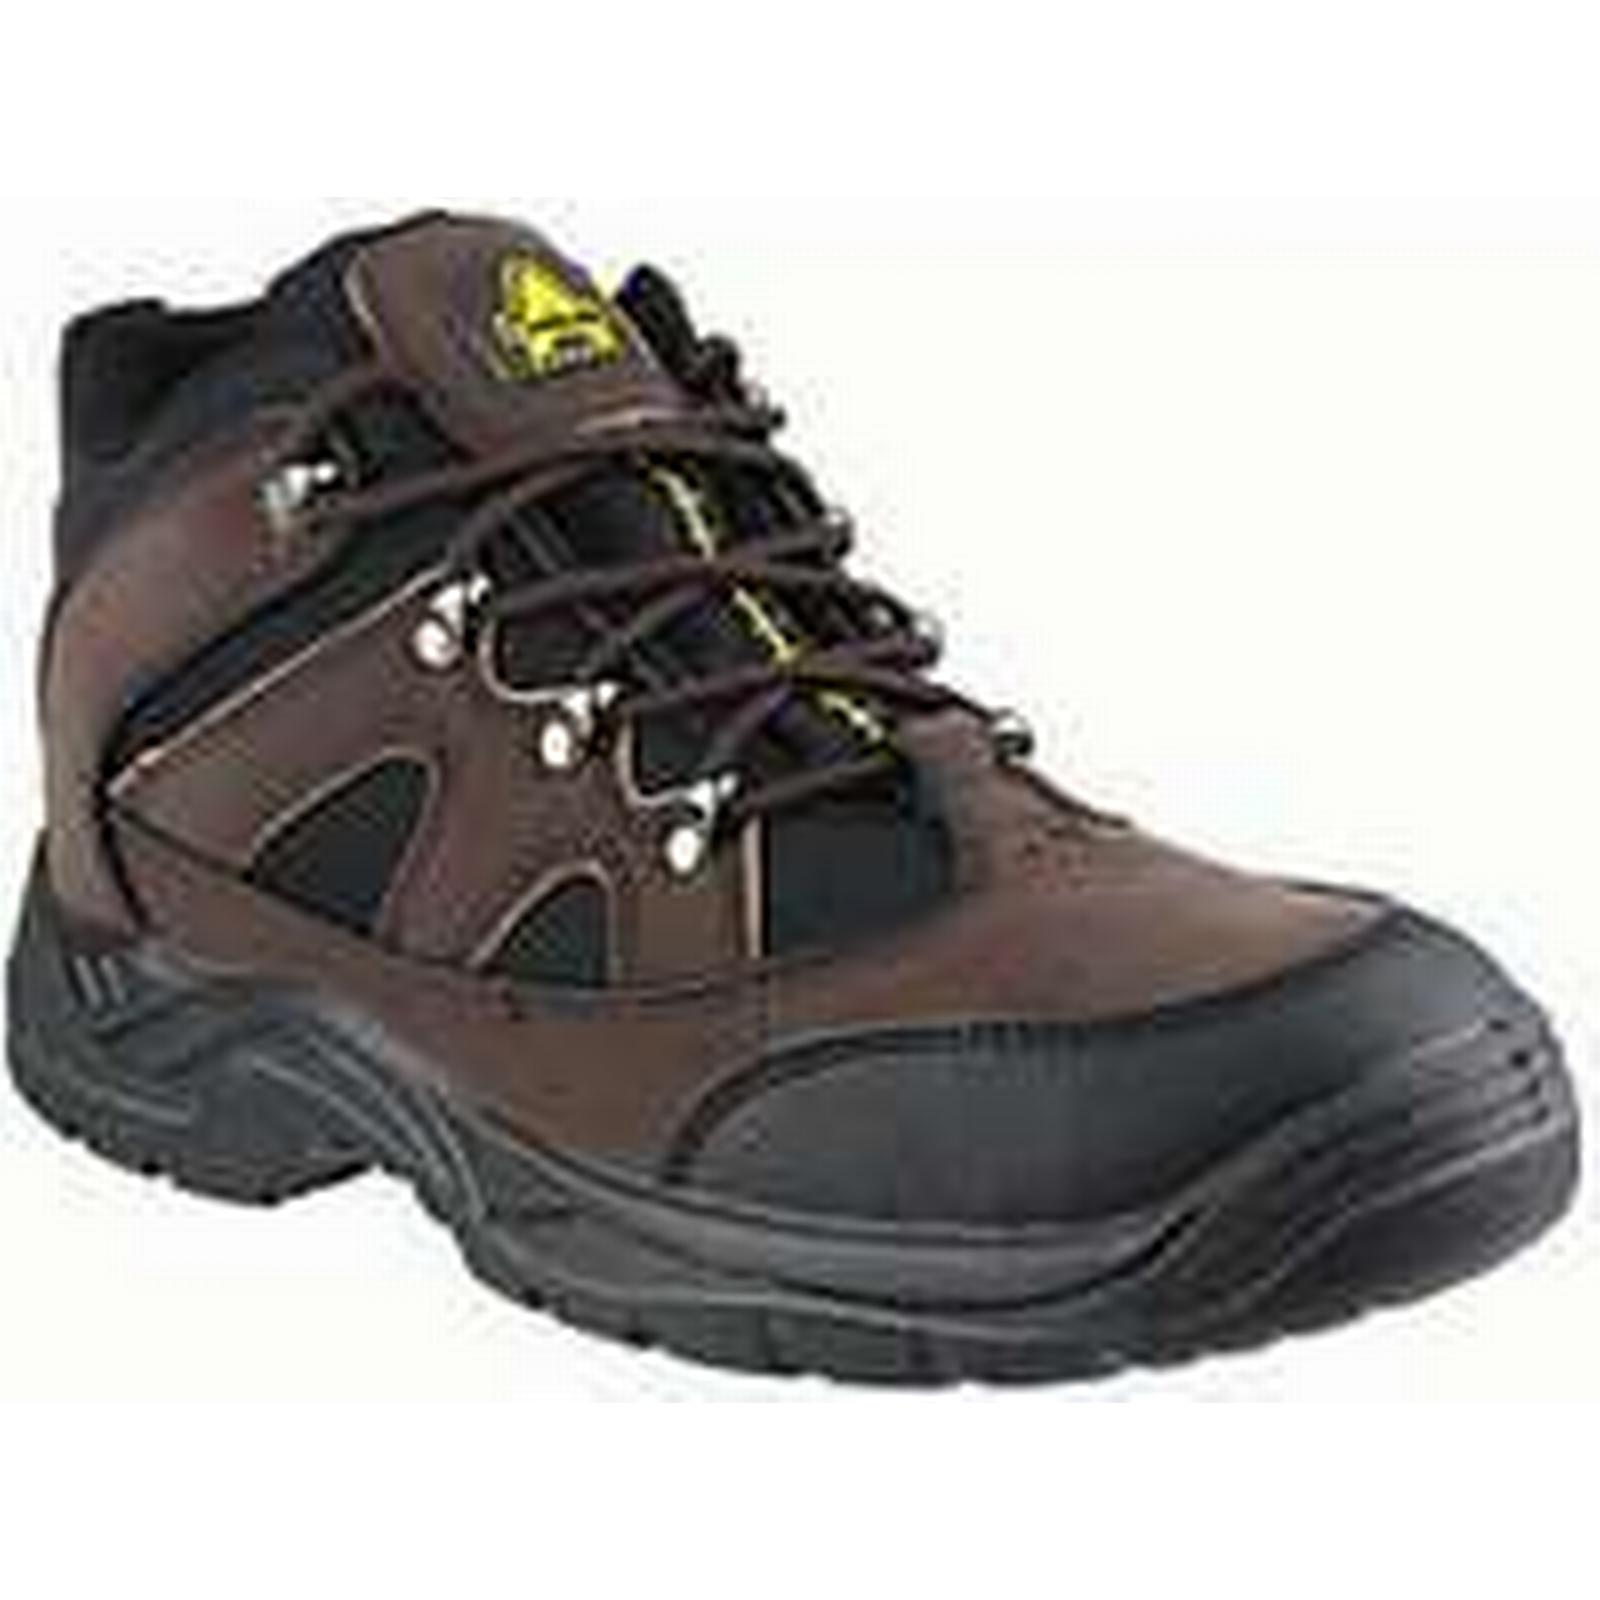 Amblers Safety - FS152 Hiker Safety Boot - Safety Brown Size 8 3d684a